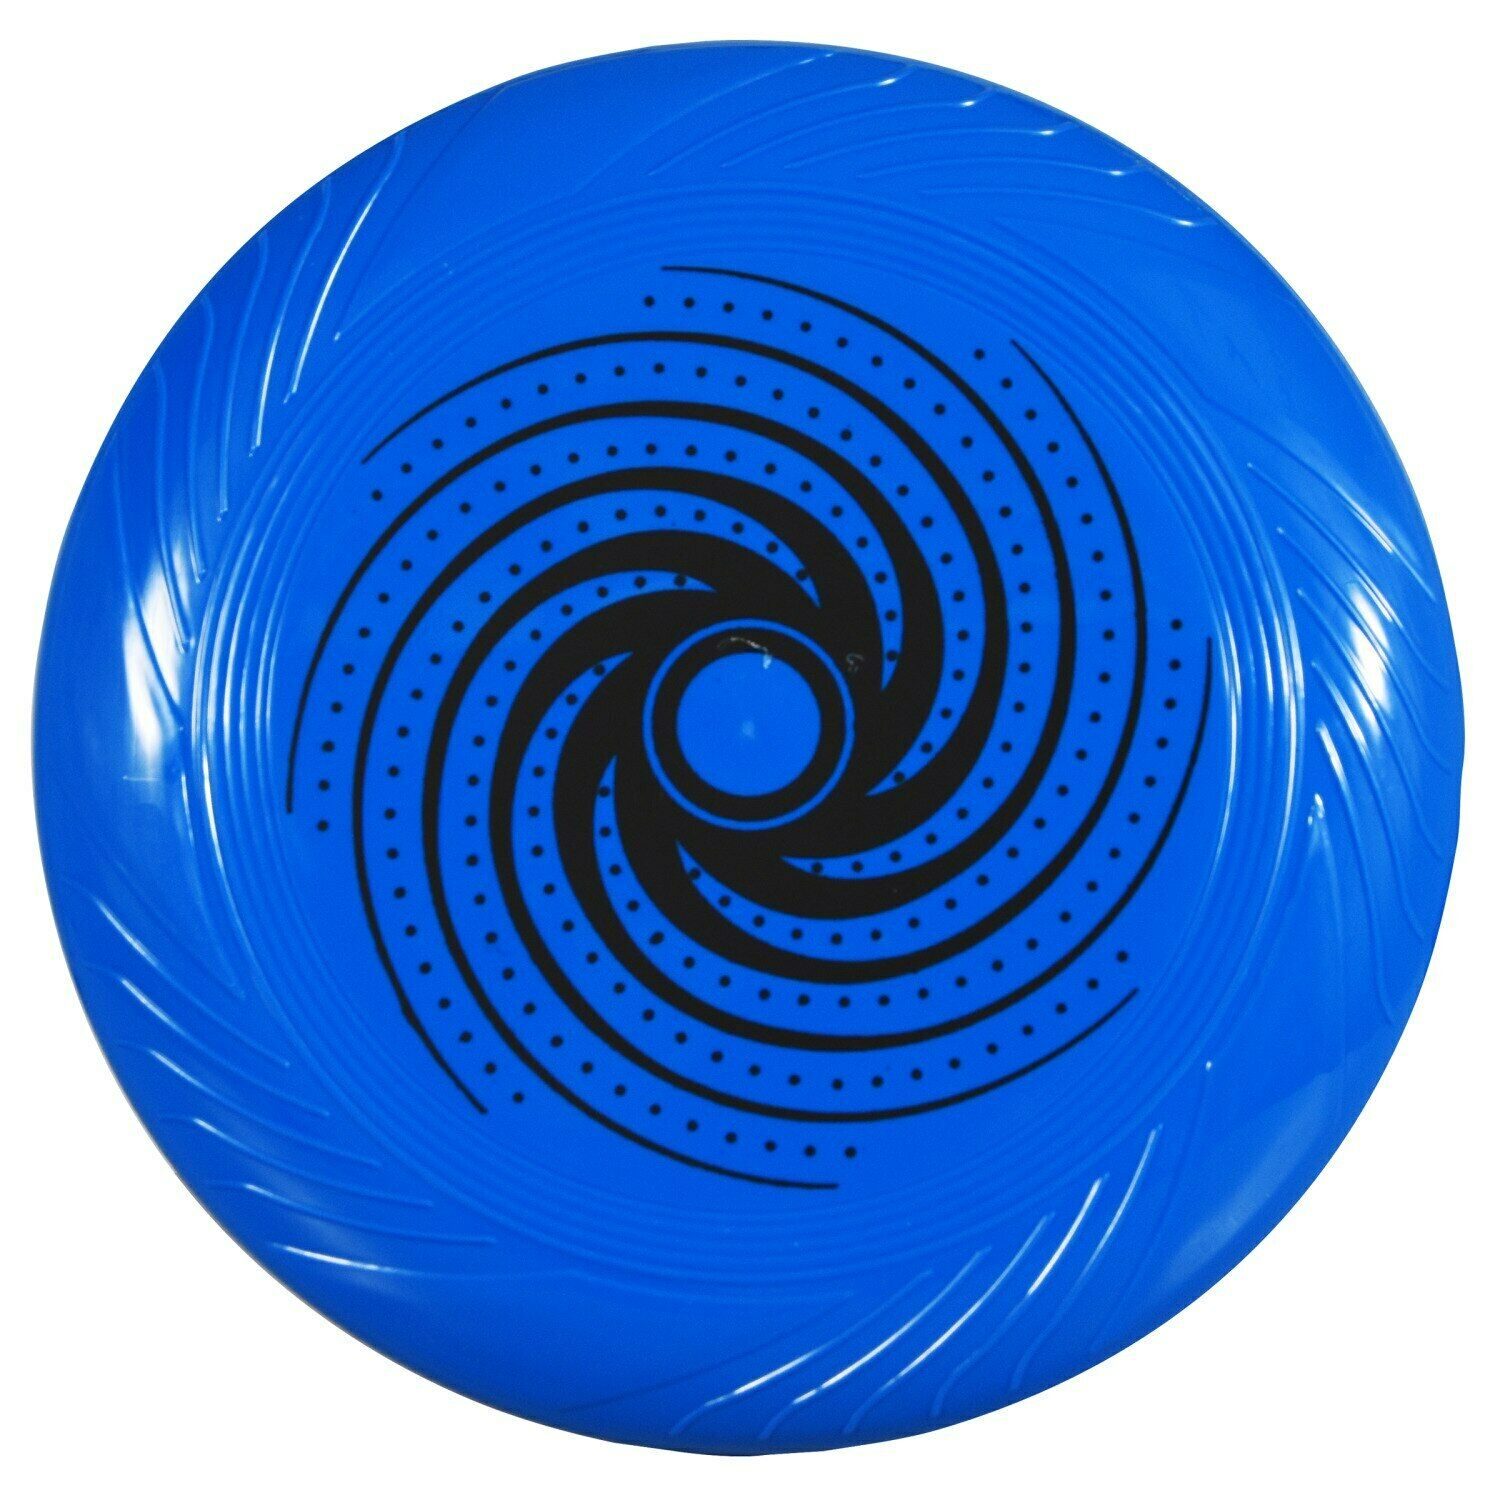 "10"" Blue with Black Swirl Print Plastic Flying Discs Frisbee"